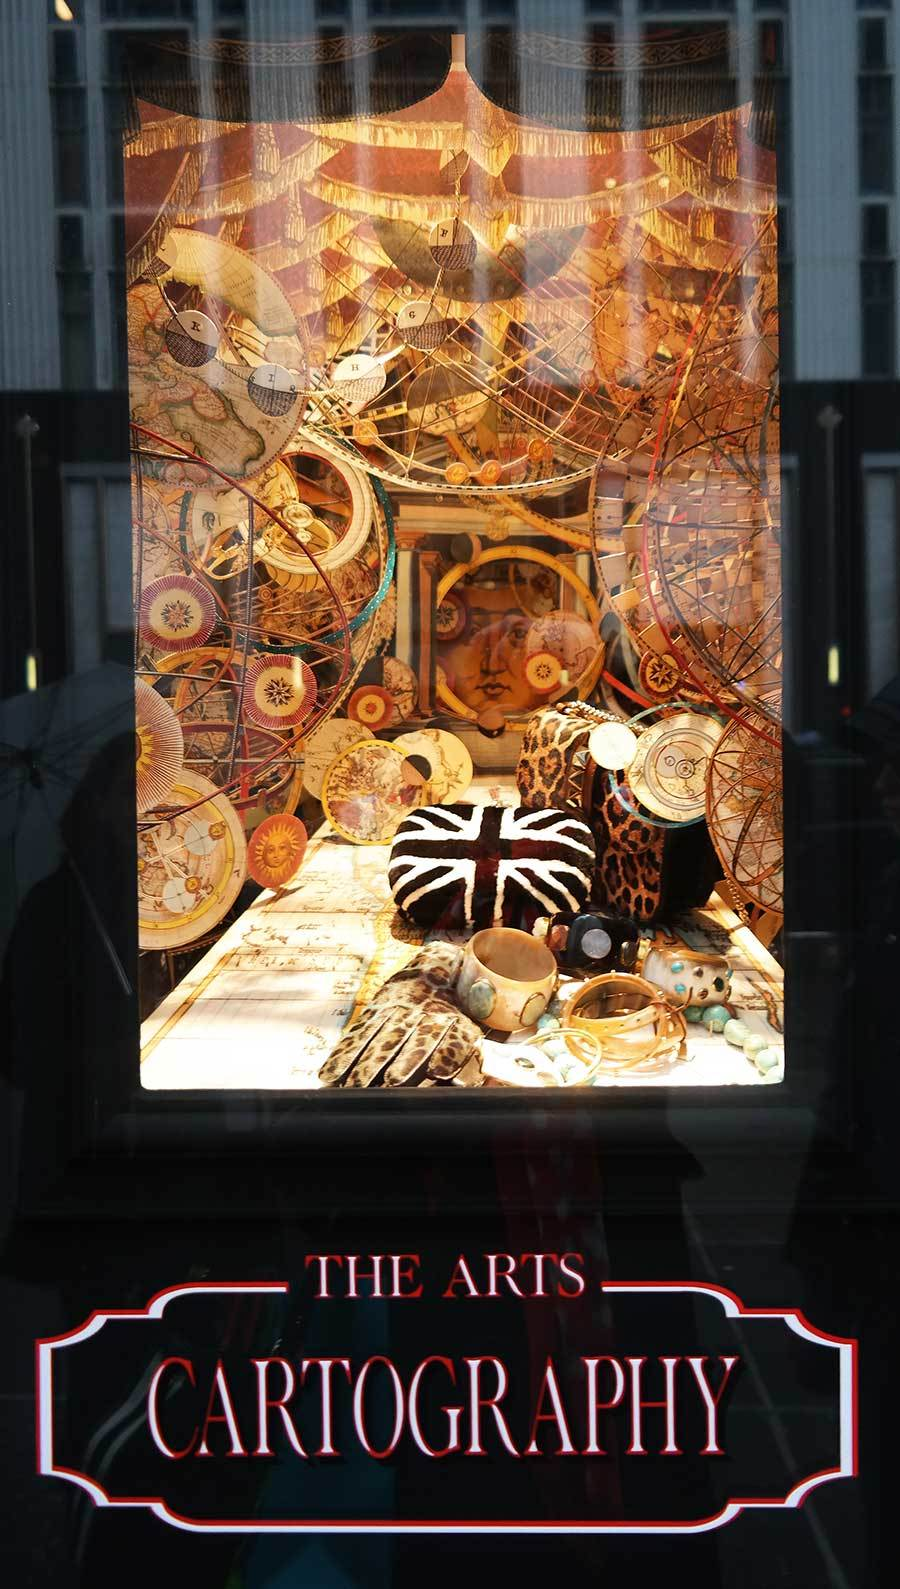 bergdorf-goodman-arts-christmas-window